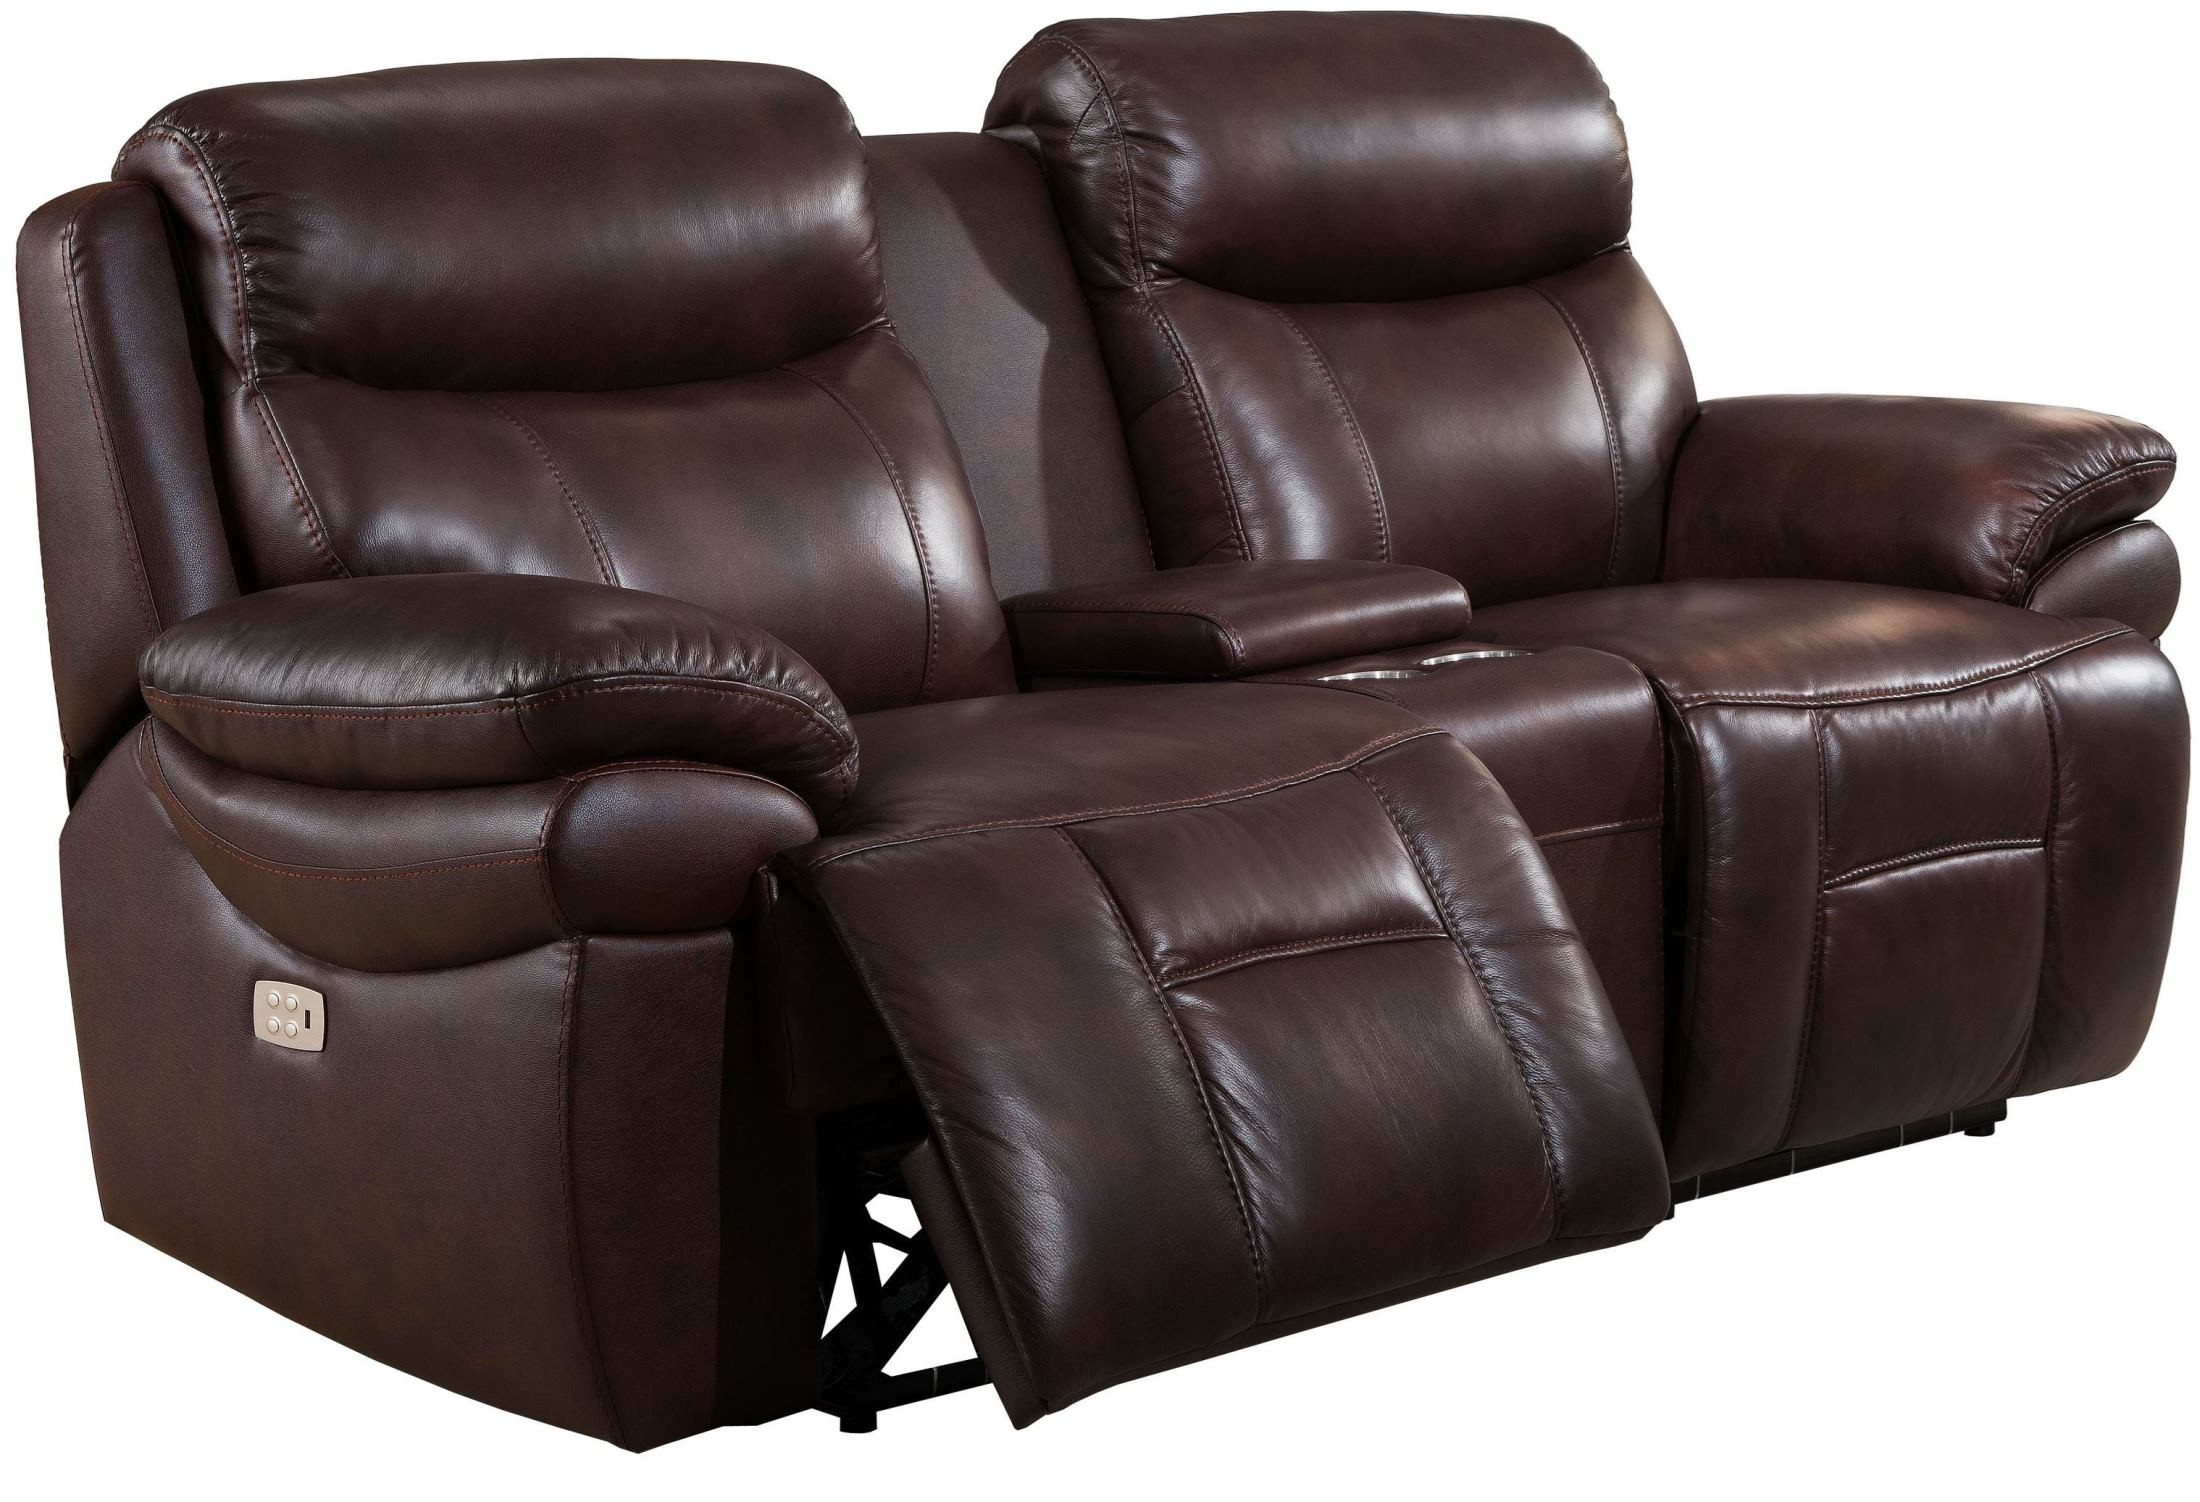 Summerlands Ii Brown Adjustable Headrest Power Reclining